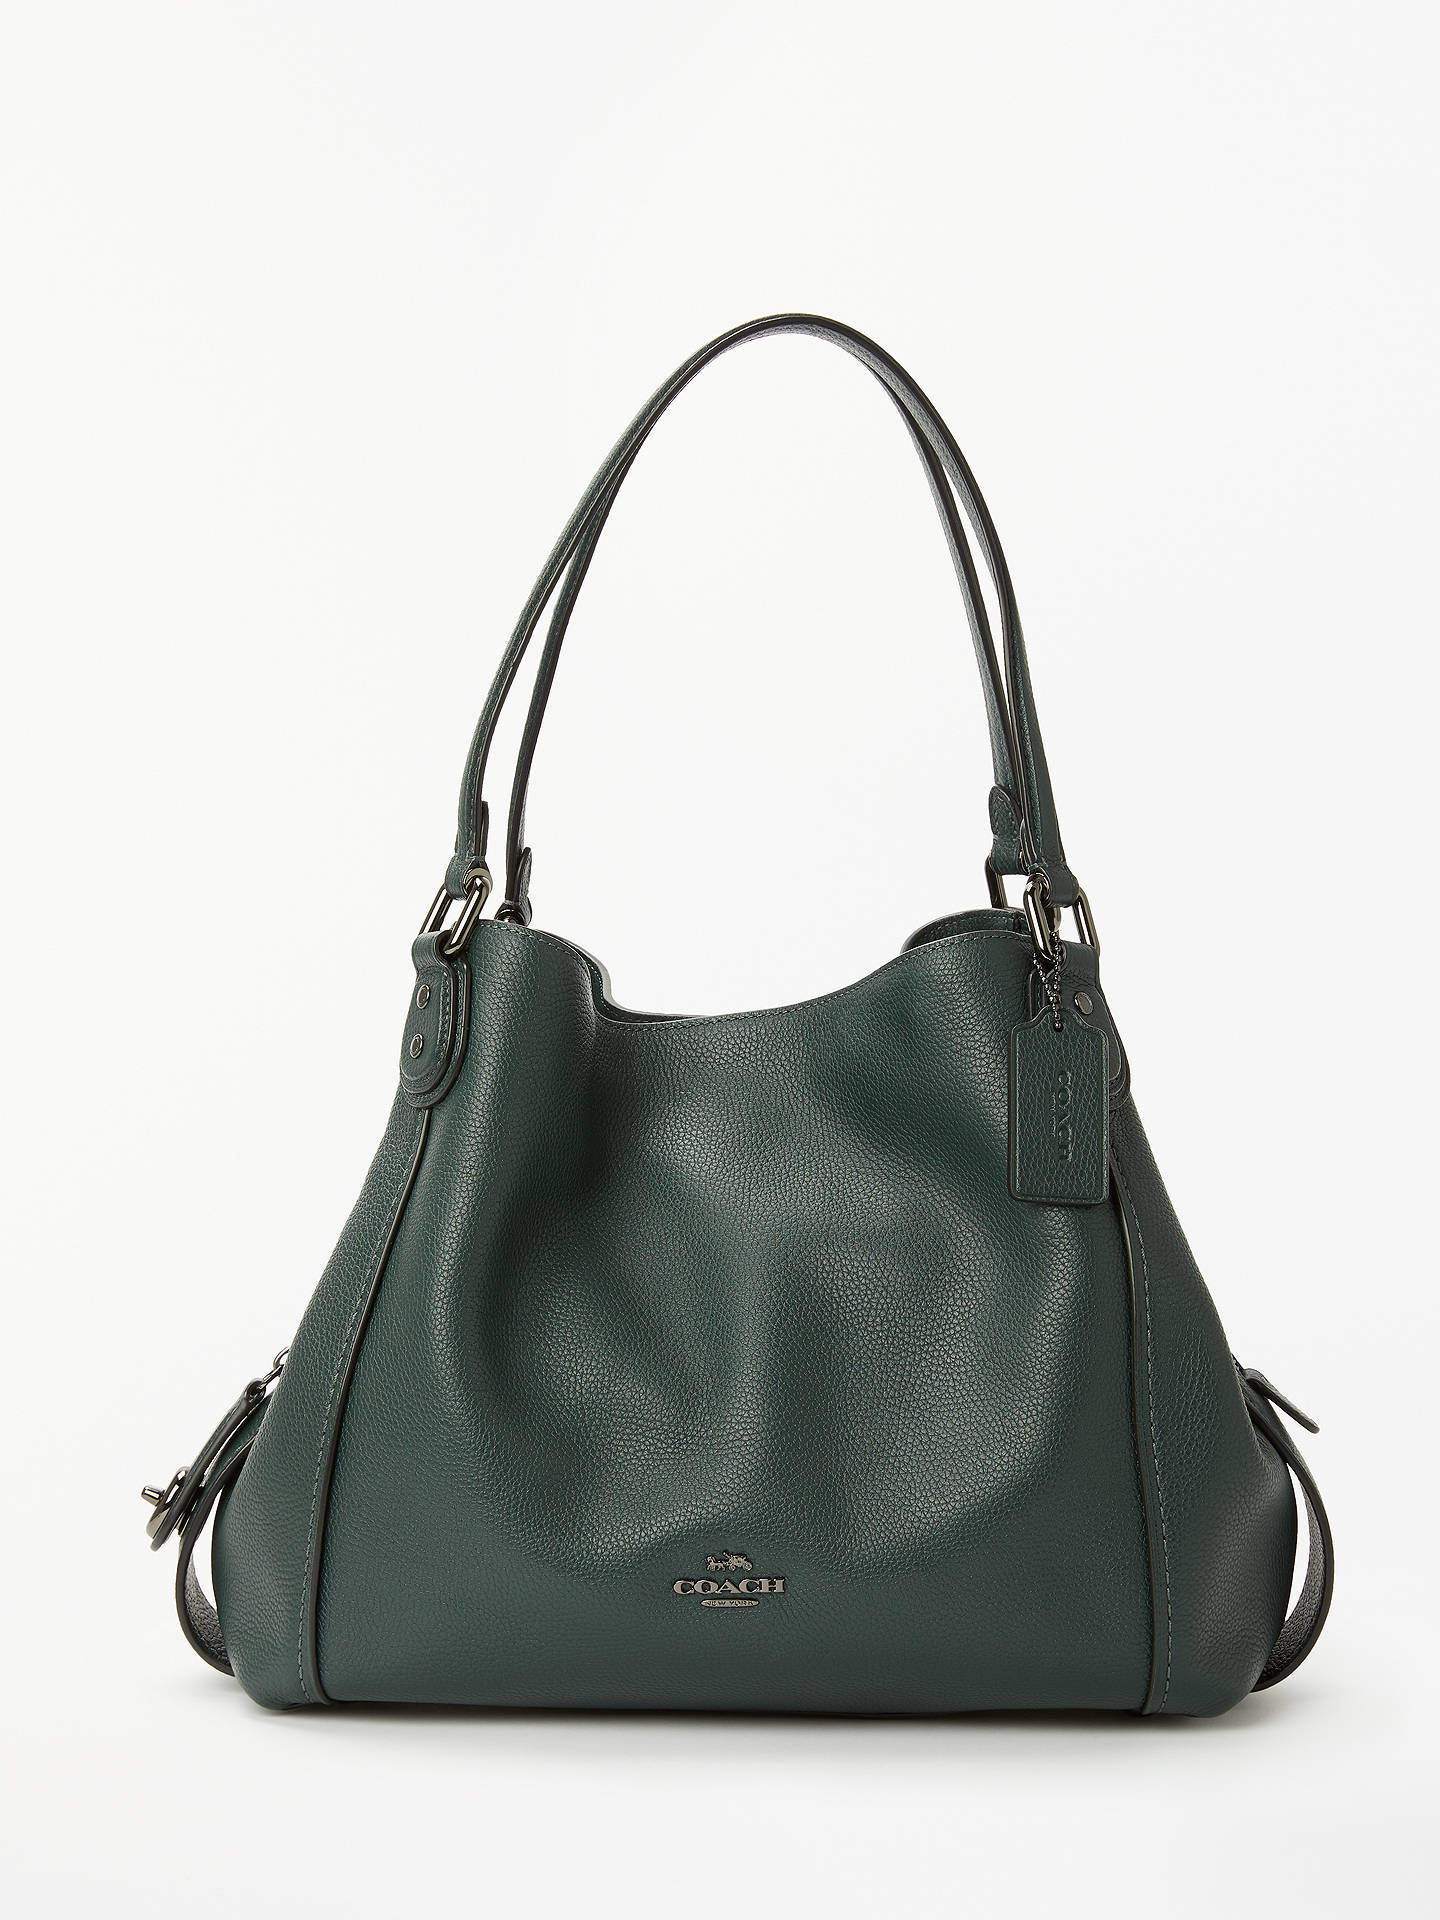 ... purchase buycoach edie 31 polished pebble leather shoulder bag cypress  online at johnlewis 65f92 0f3fe dedd158c28b79